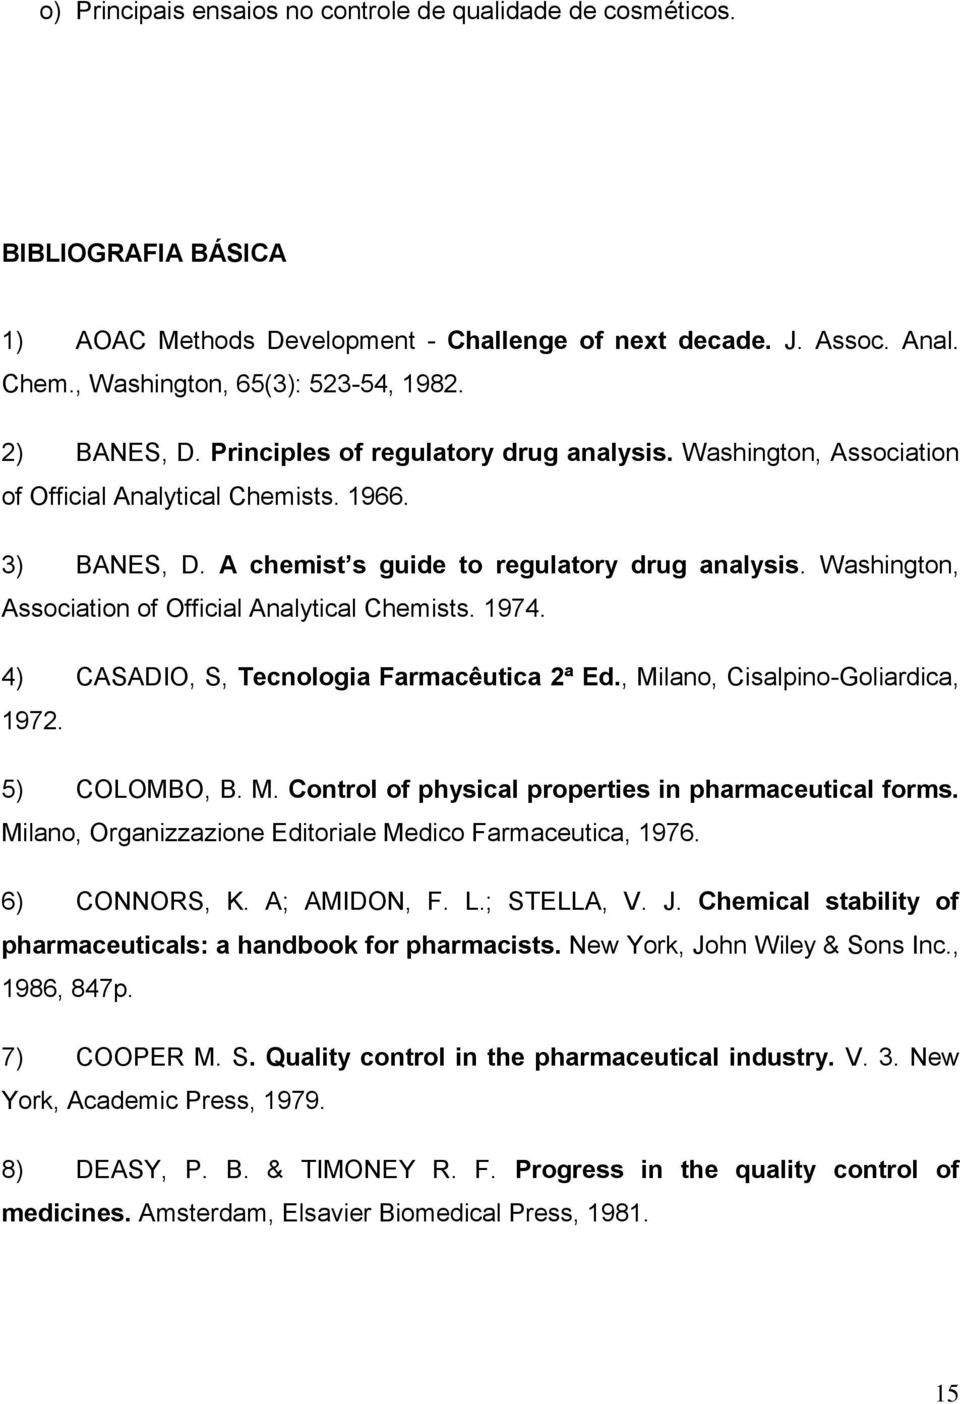 Washington, Association of Official Analytical Chemists. 1974. 4) CASADIO, S, Tecnologia Farmacêutica 2ª Ed., Milano, Cisalpino-Goliardica, 1972. 5) COLOMBO, B. M. Control of physical properties in pharmaceutical forms.